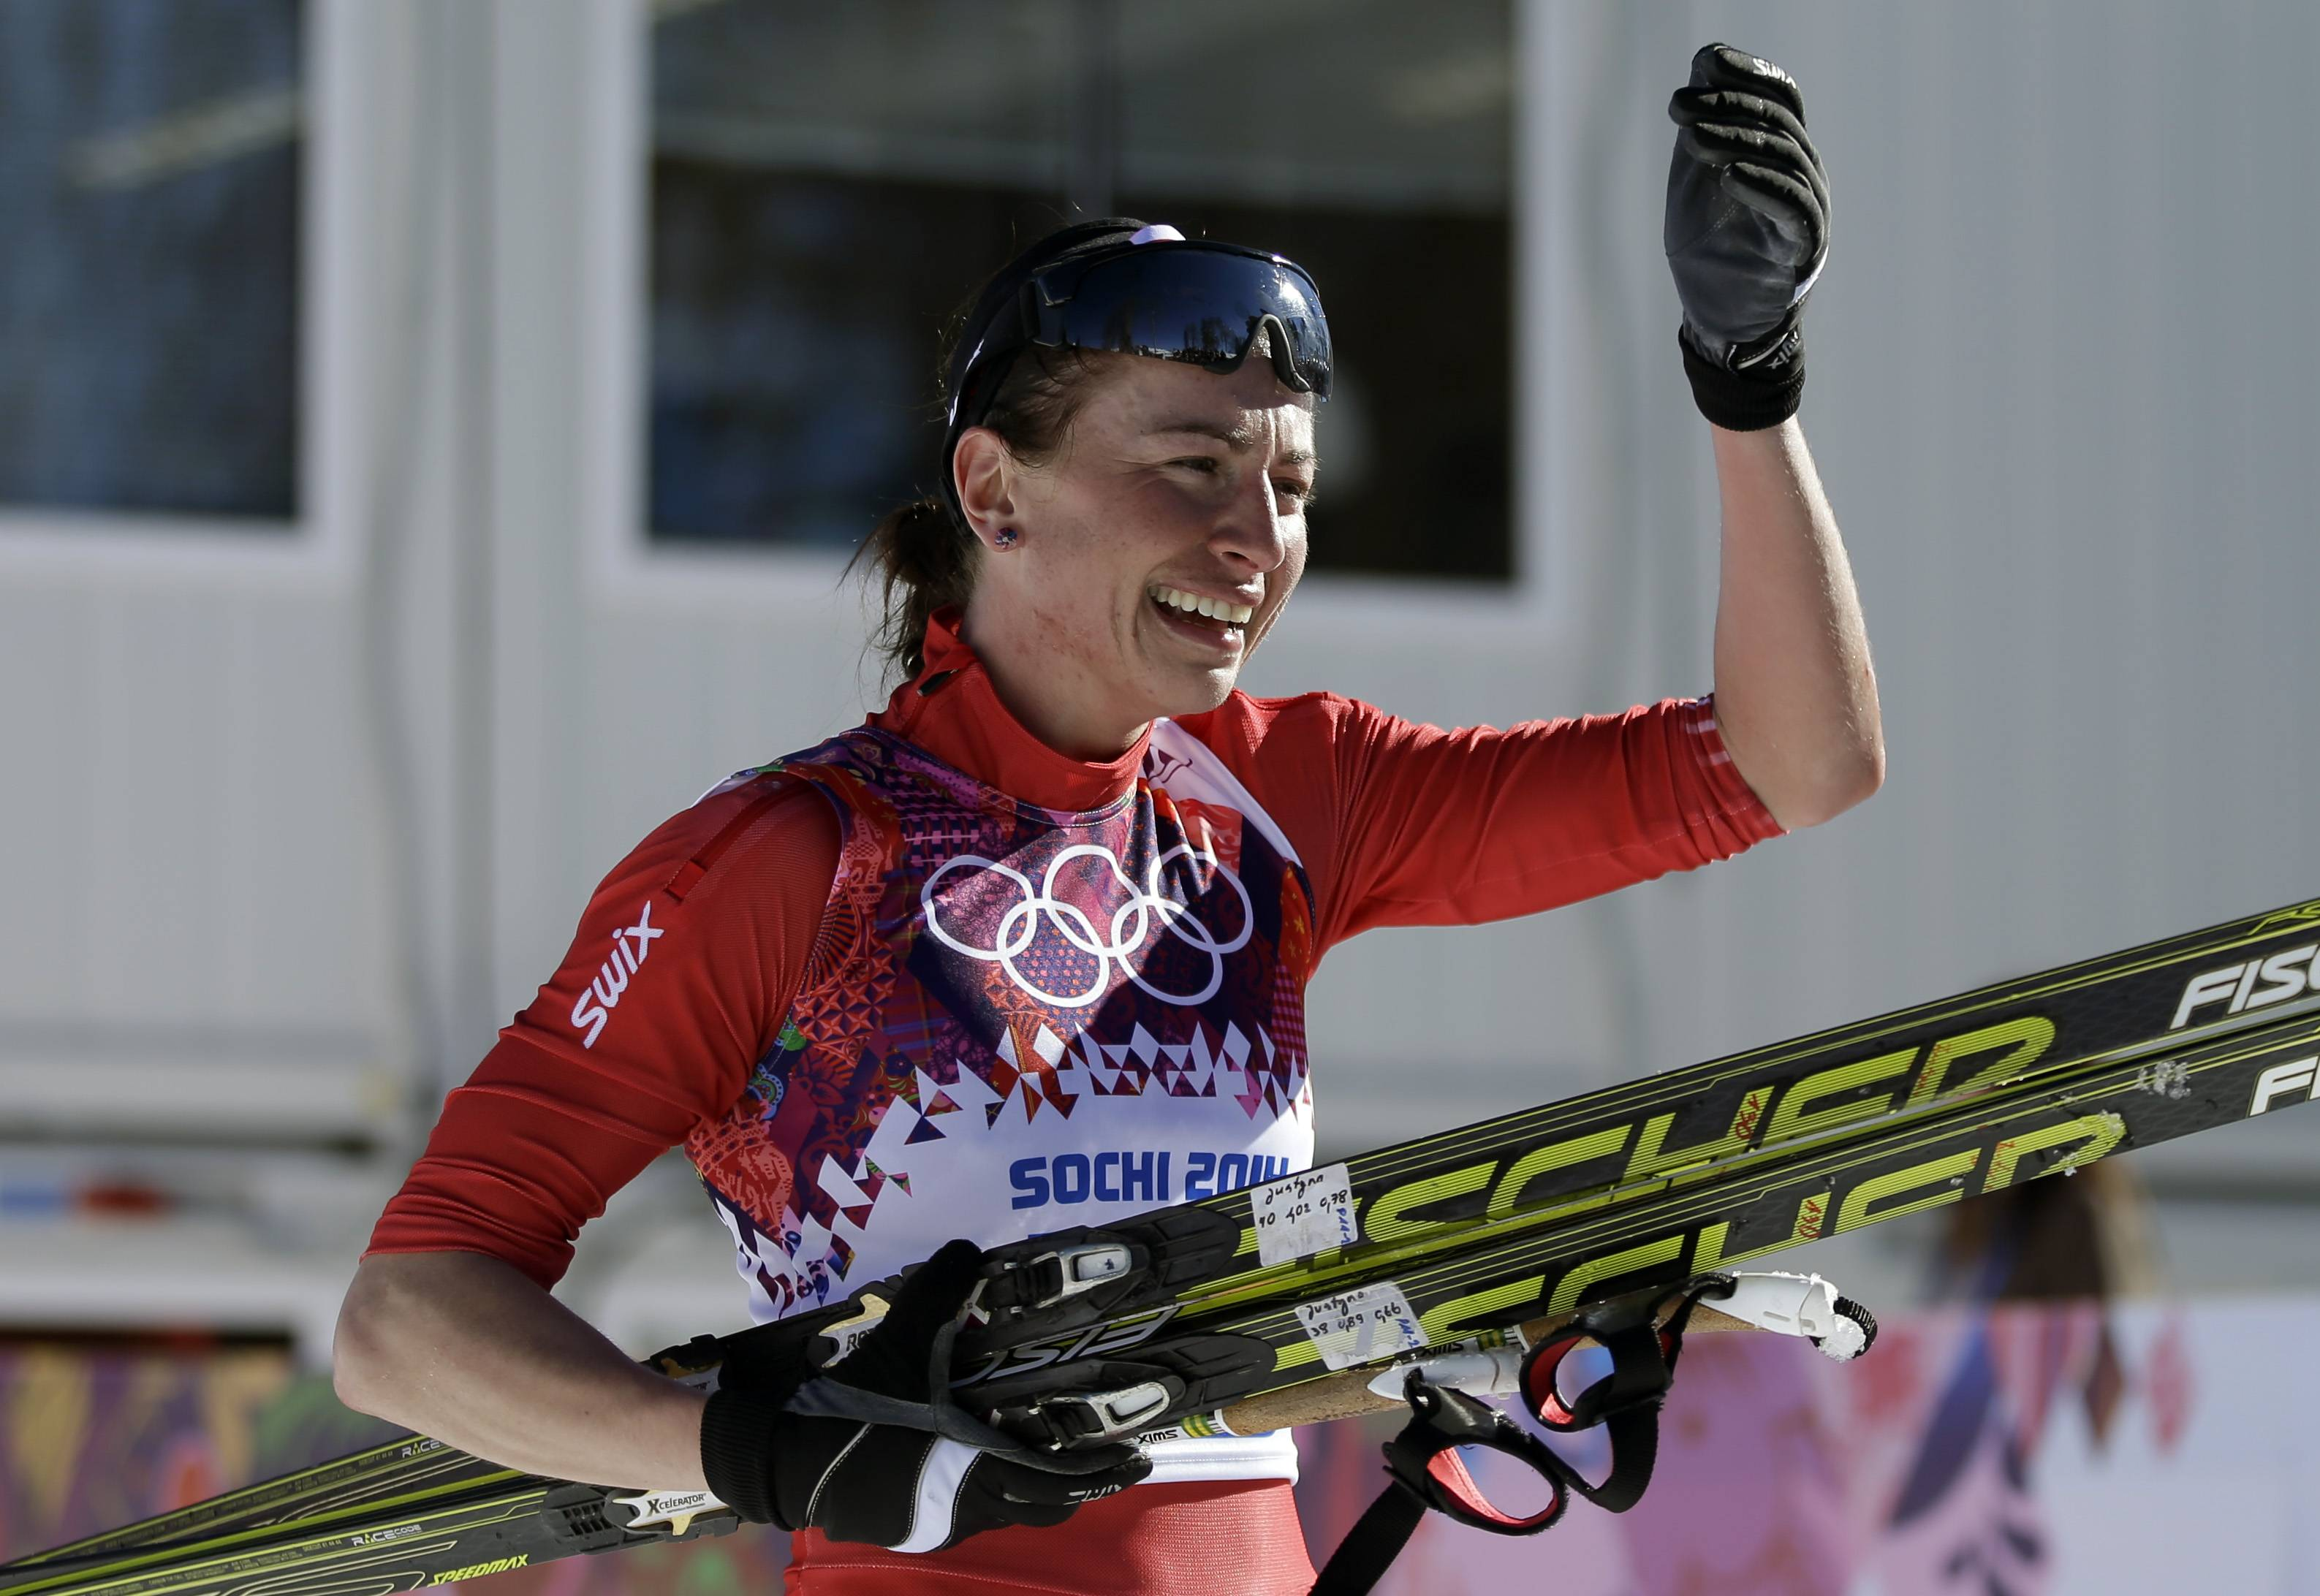 Poland's Justyna Kowalczyk celebrates Thursday after winning the women's 10K classical-style cross-country race at the 2014 Winter Olympics in Krasnaya Polyana, Russia.